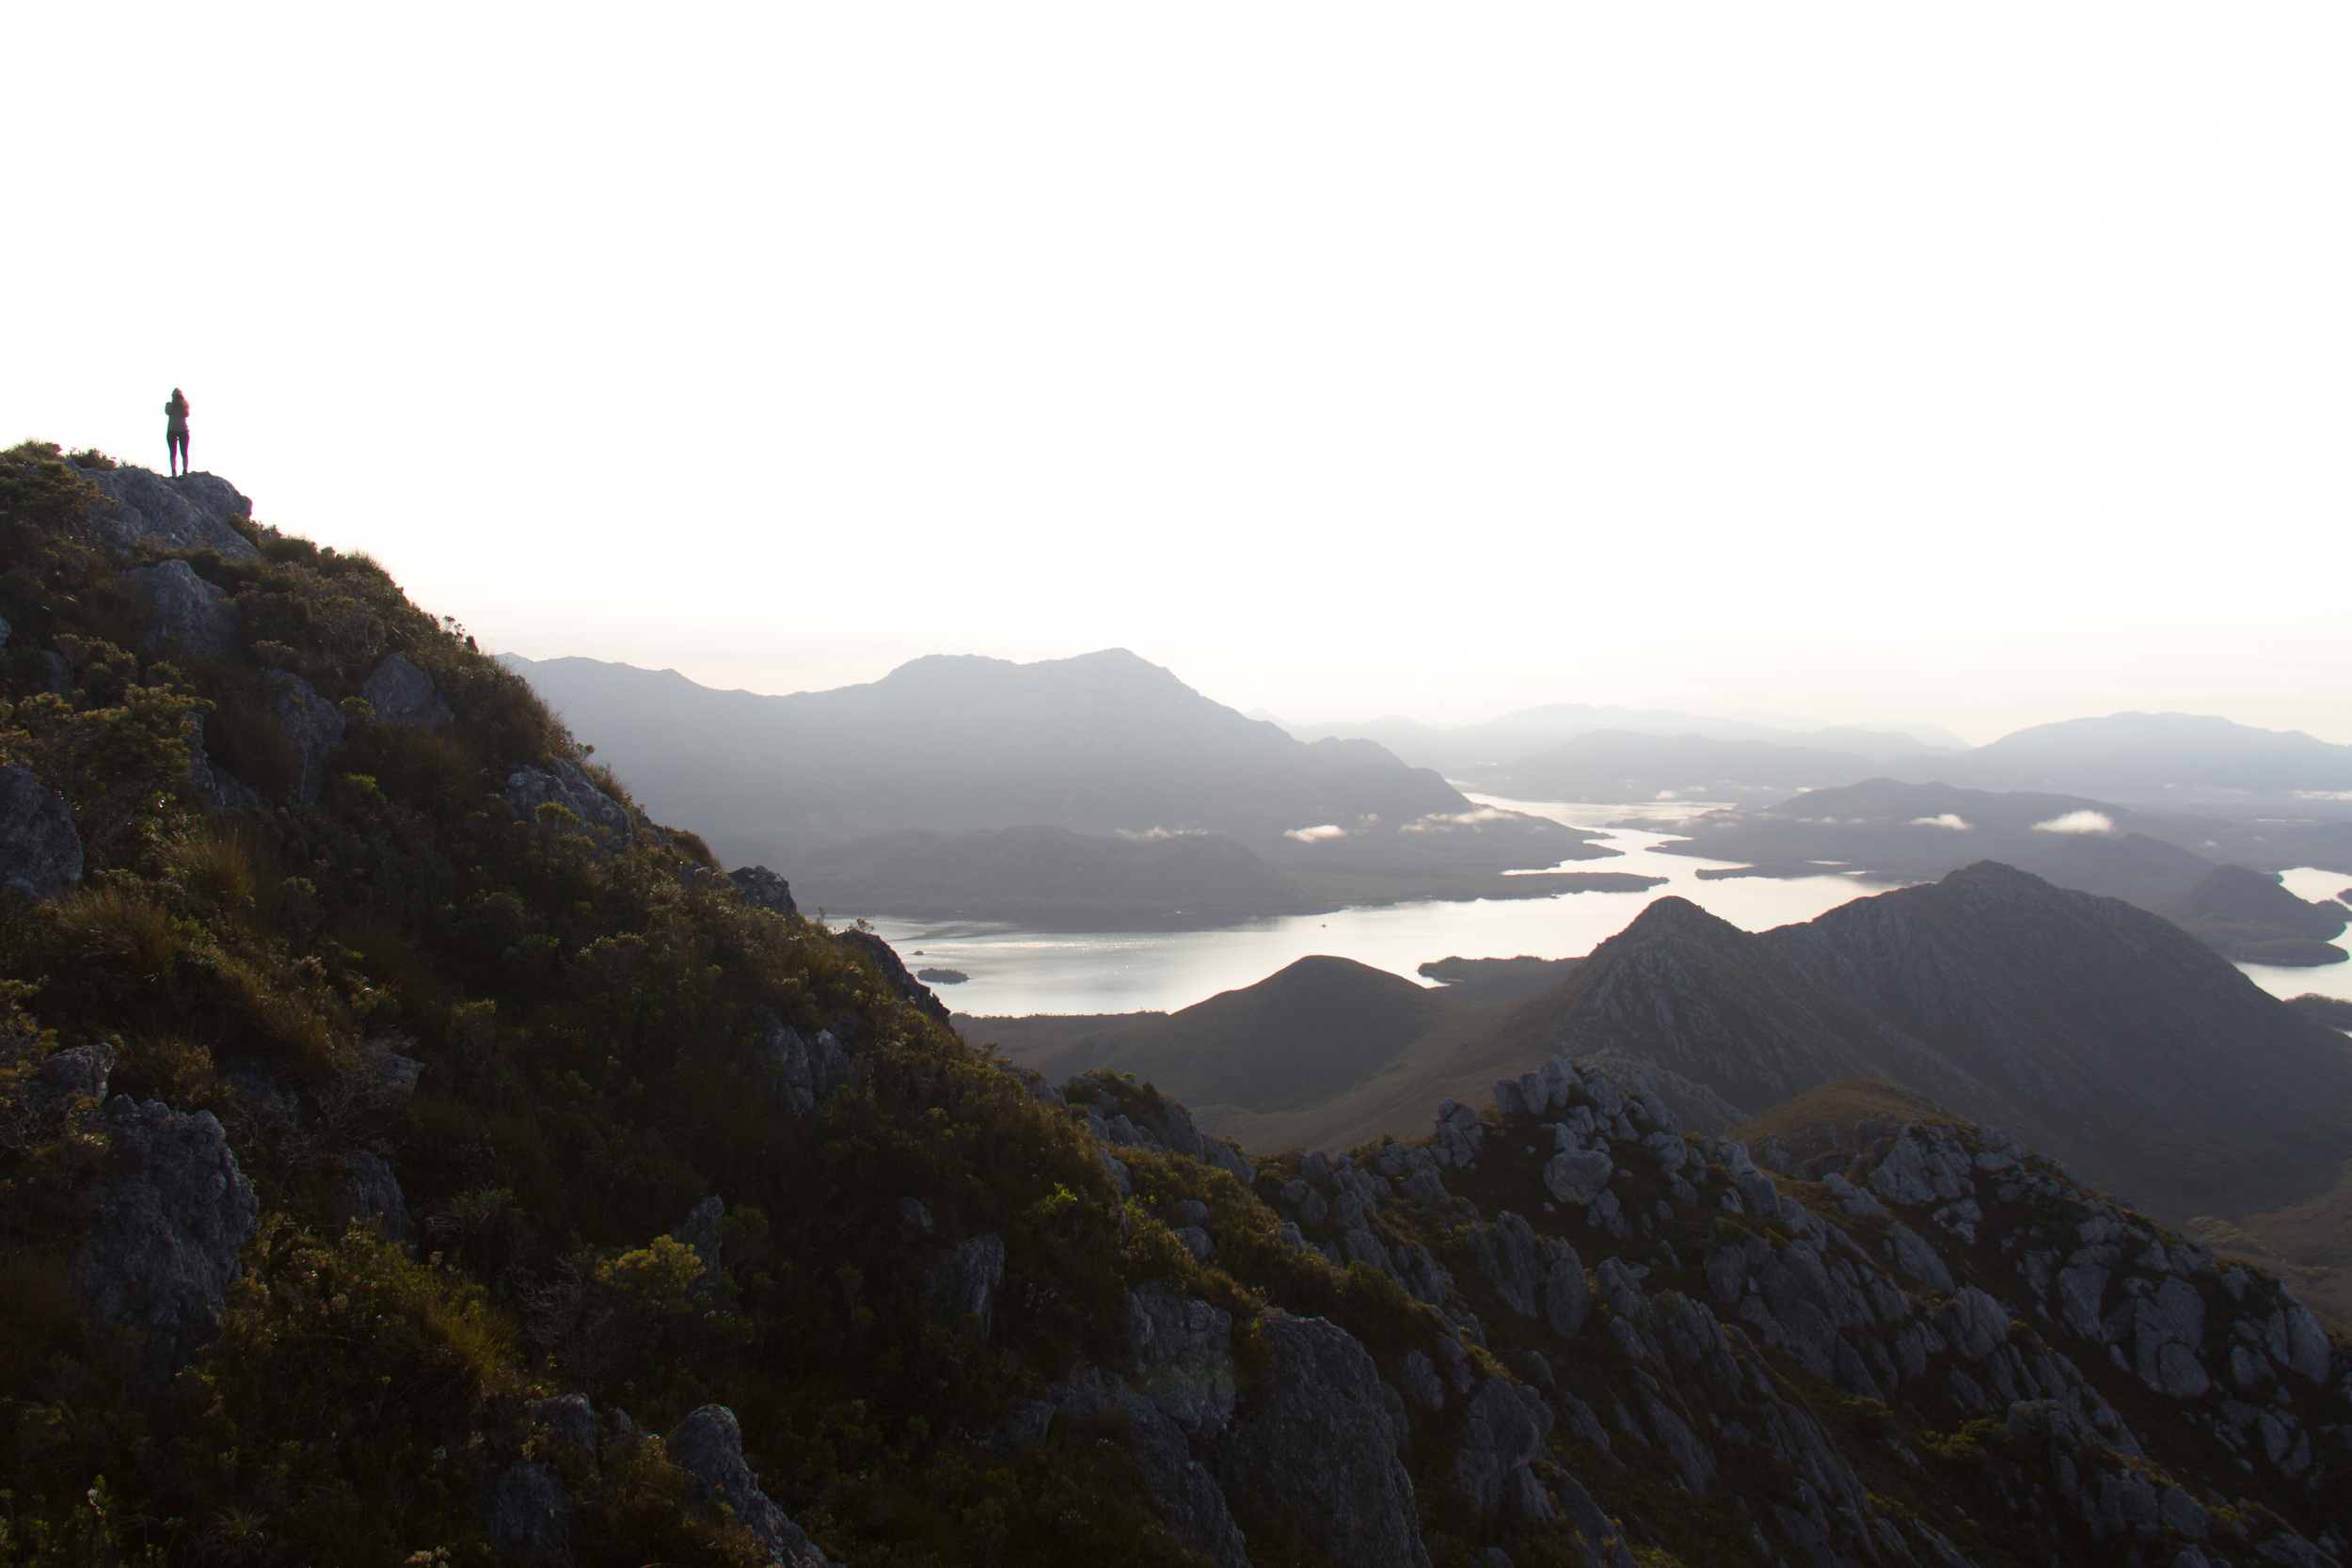 The view towards Bathurst Harbour and Mount Rugby with Liss on the Summit of Mount Misery.